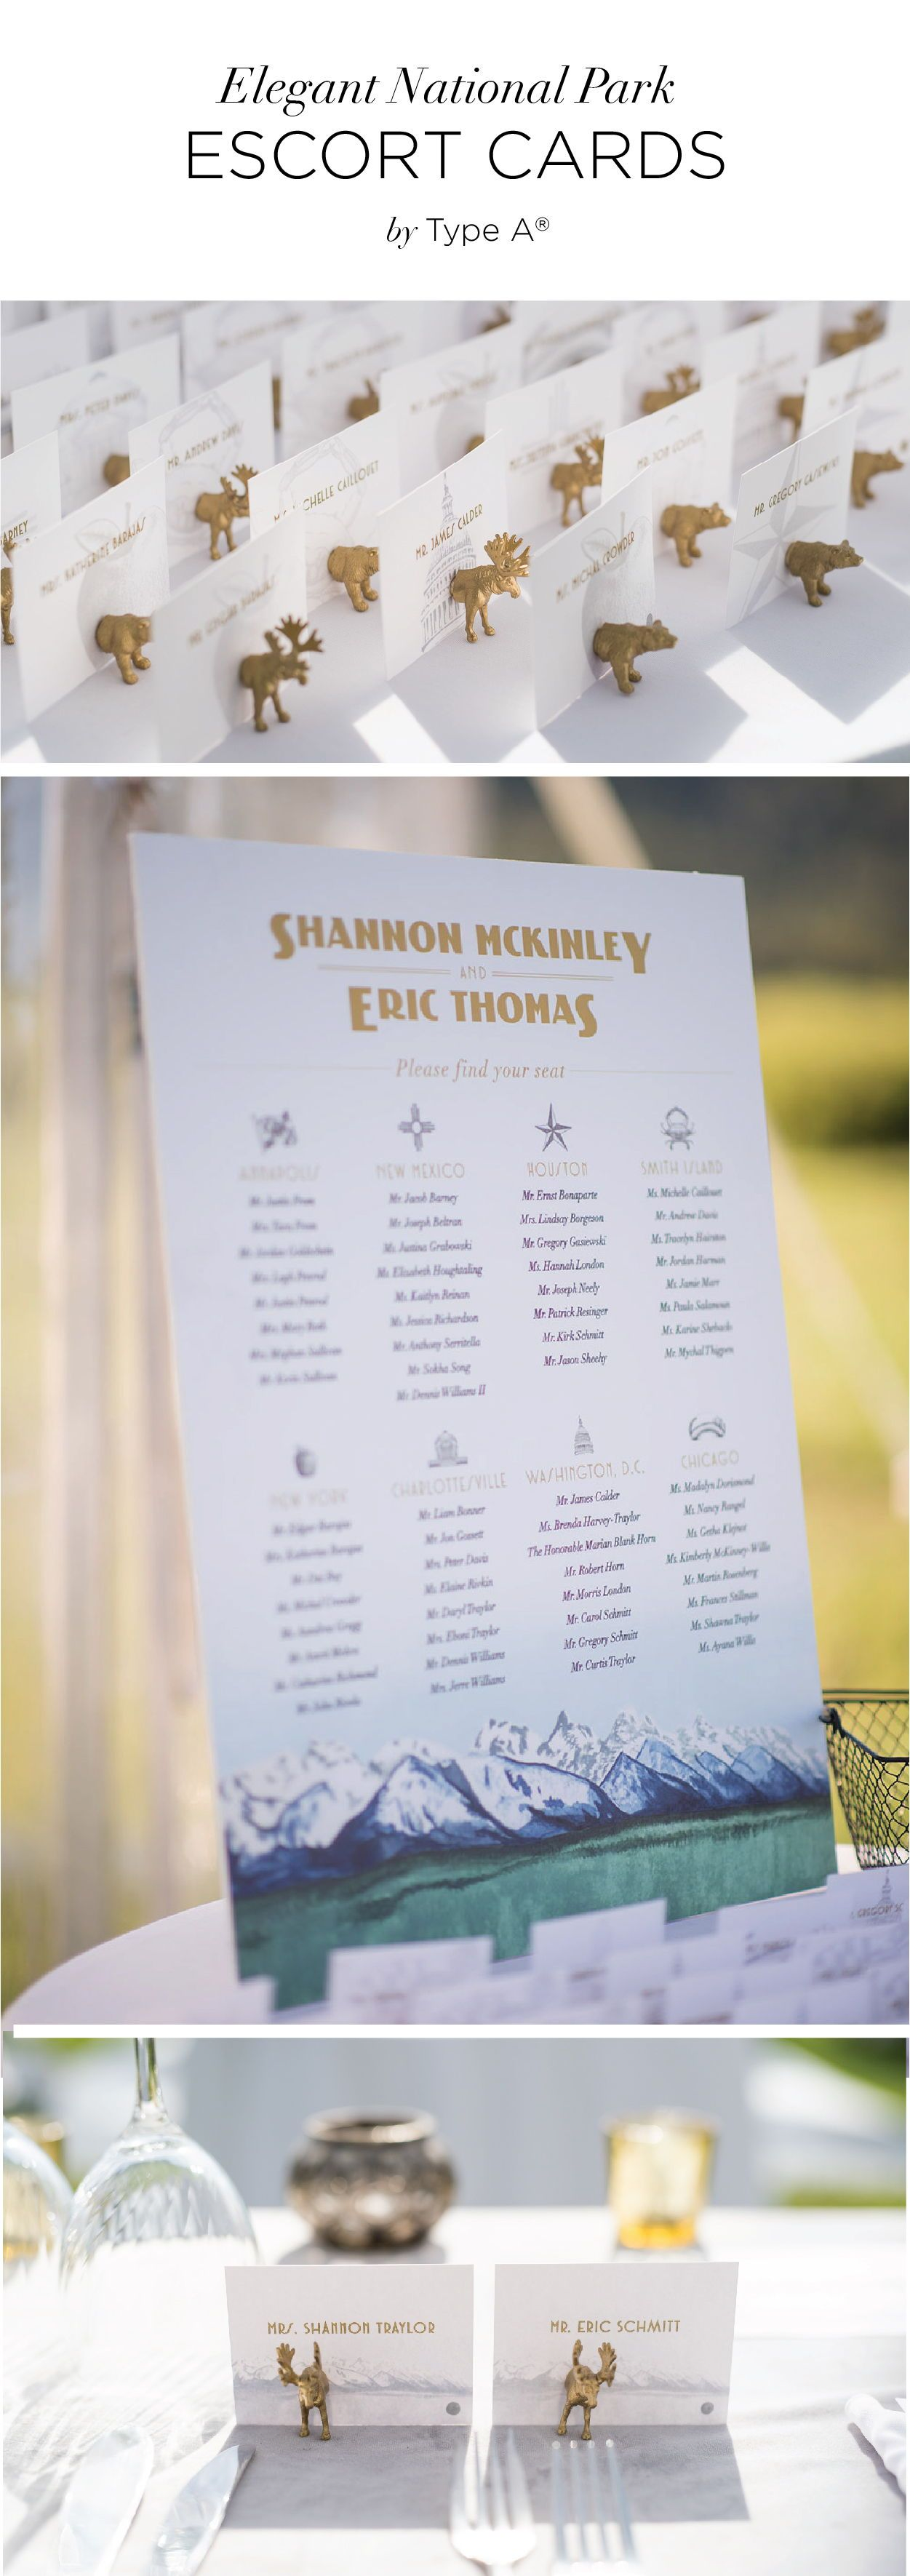 Shannon & Eric's National Park Wedding in 2019 | Wedding ...